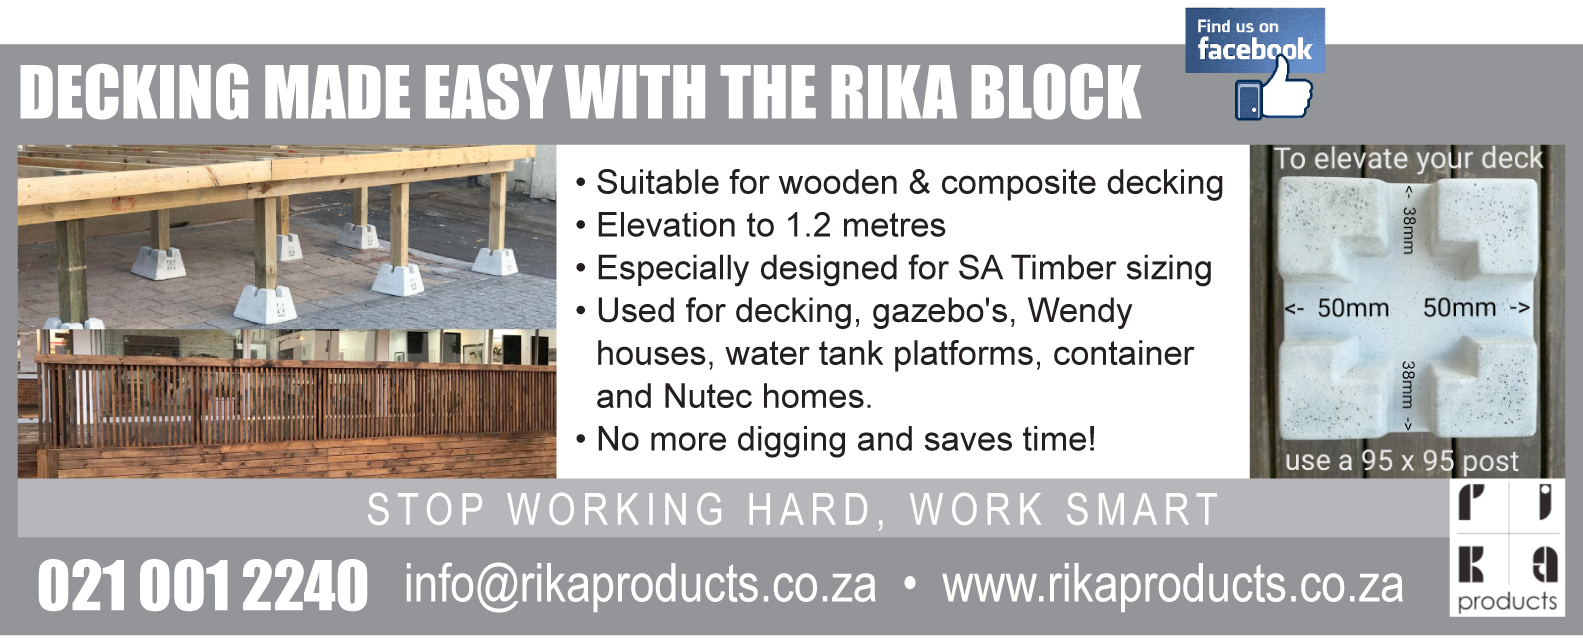 Rika Products (PTY) Ltd